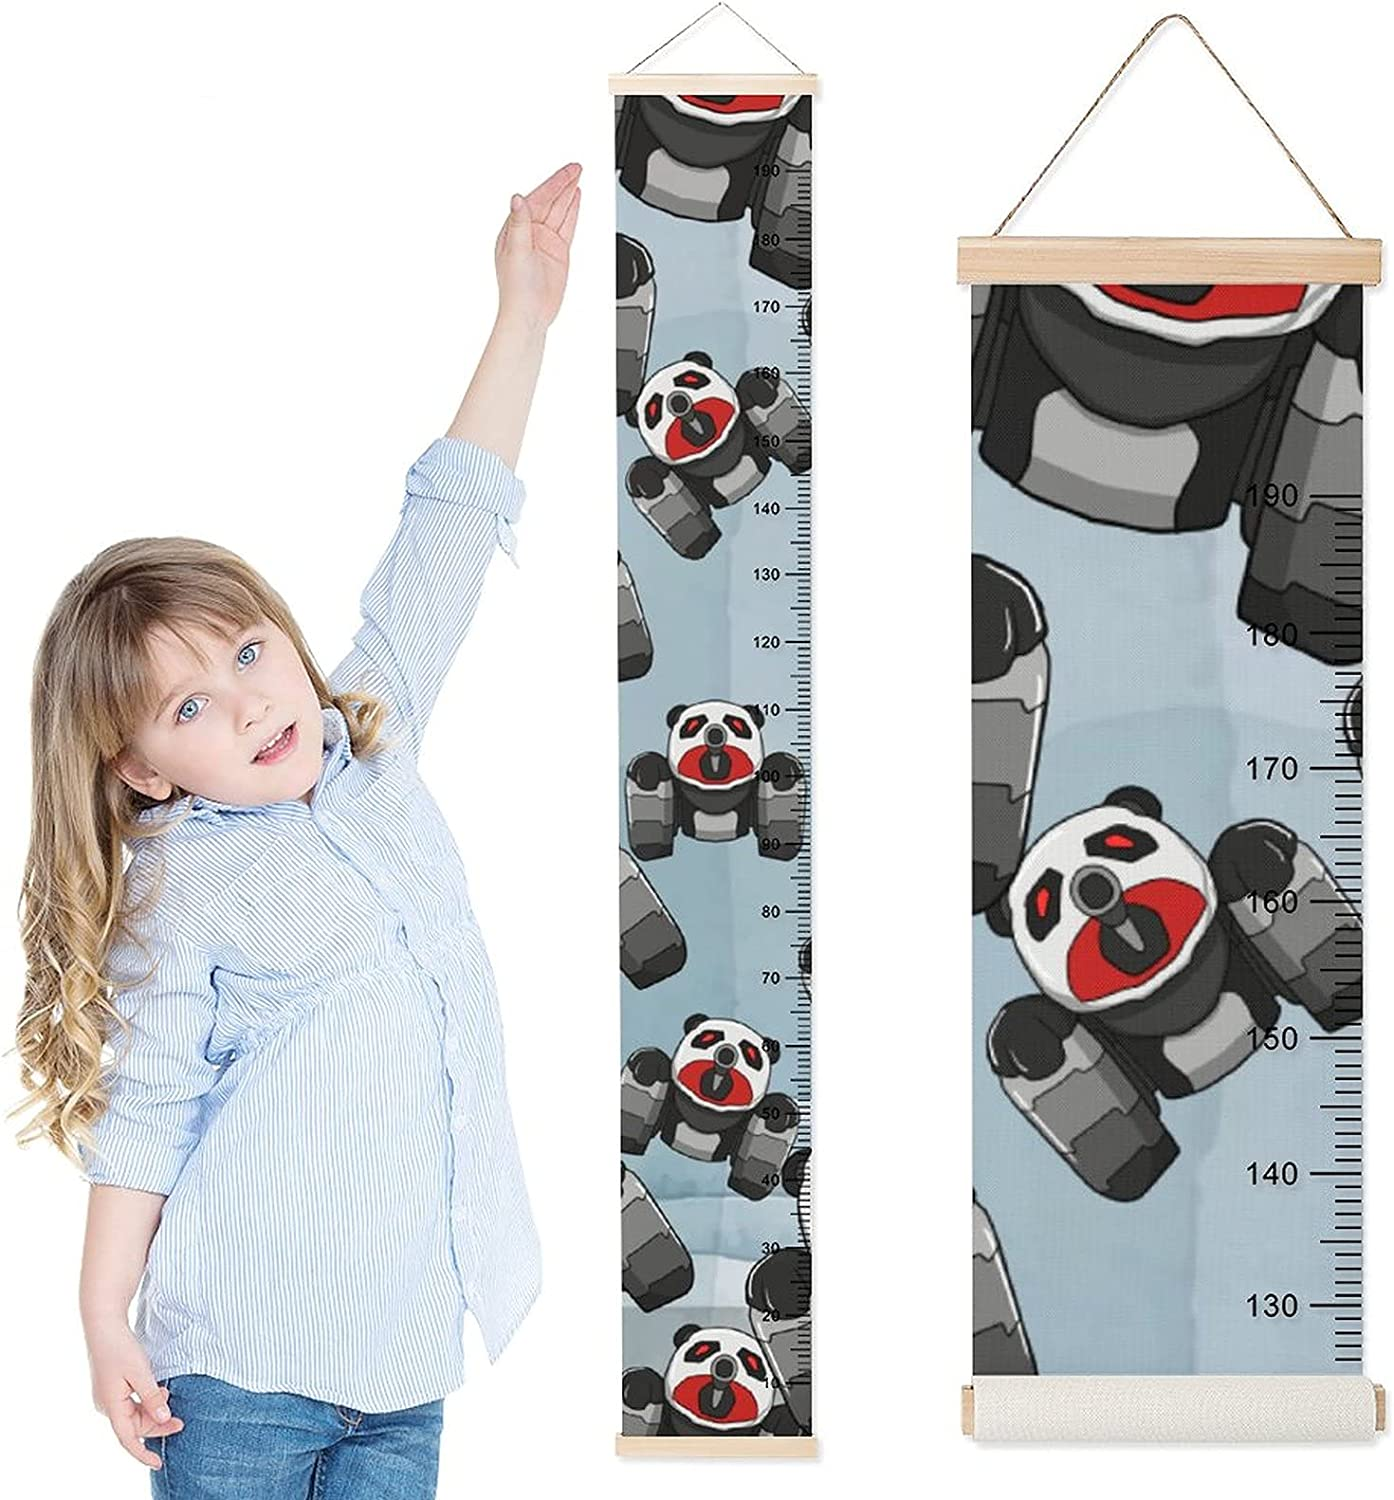 DKISEE Baby Growth Chart Child Ruler Height Wall Sale Special Max 62% OFF Price Hanging f